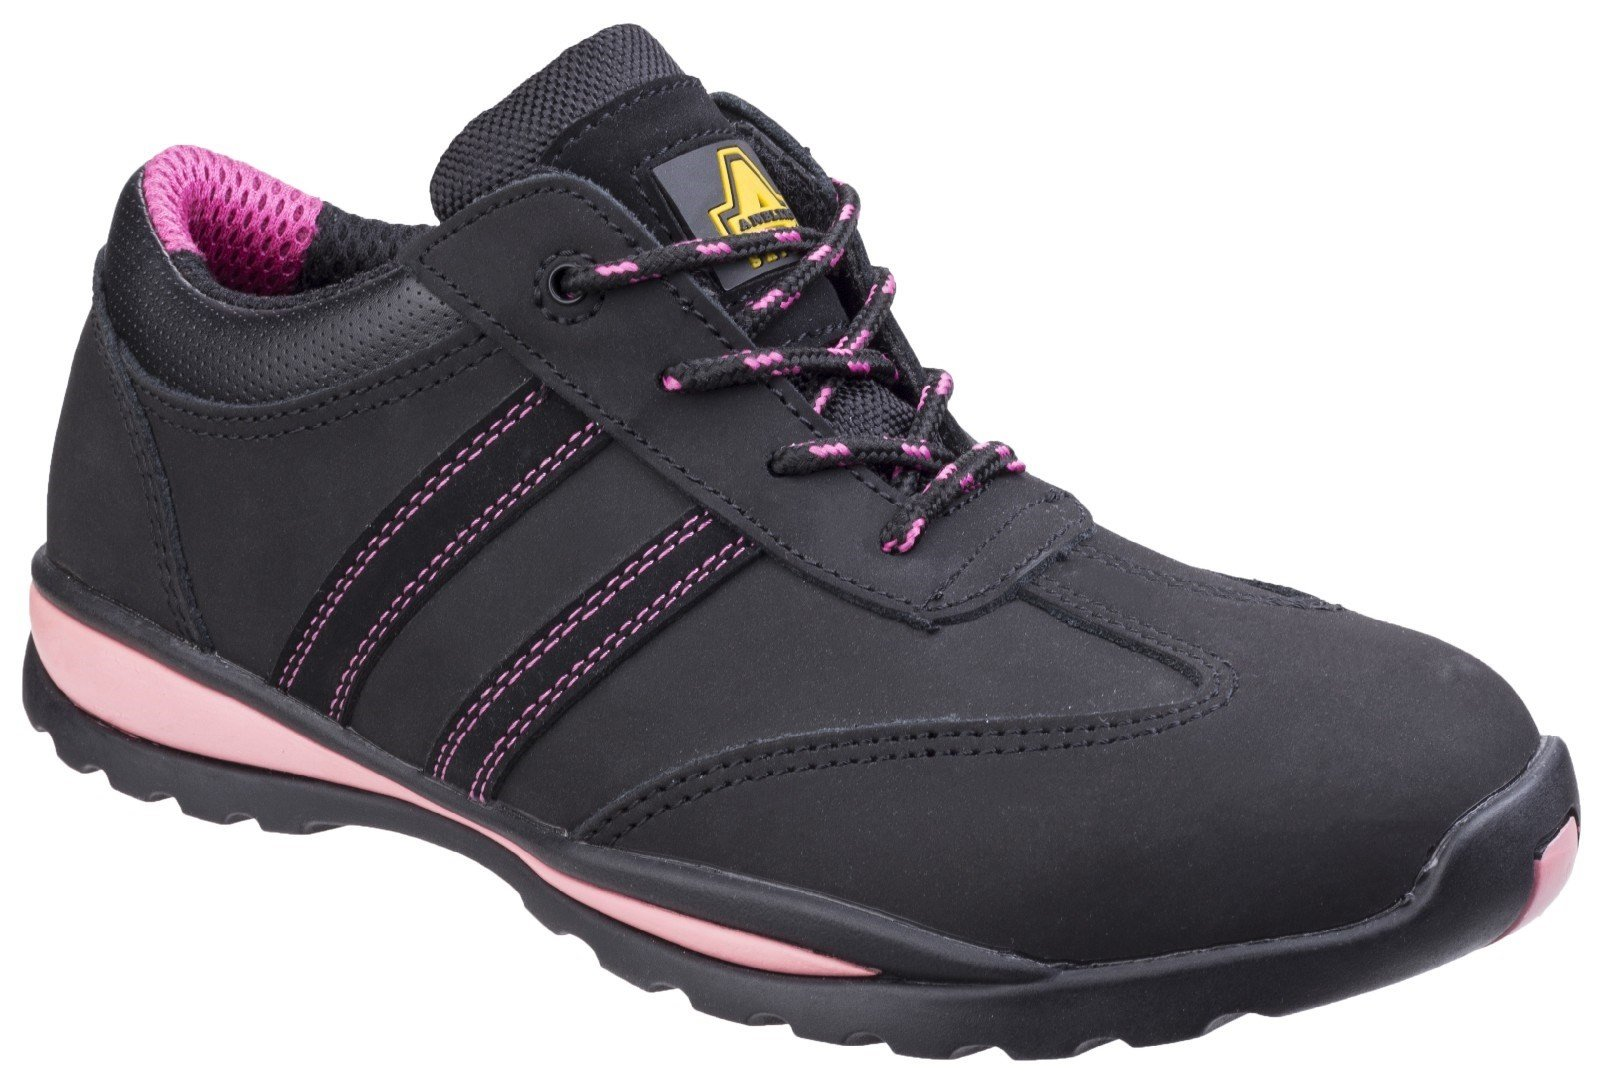 Amblers Women's Safety Heat Resistant Lace Up Trainer Multicolor 19342 - Black/Pink 3